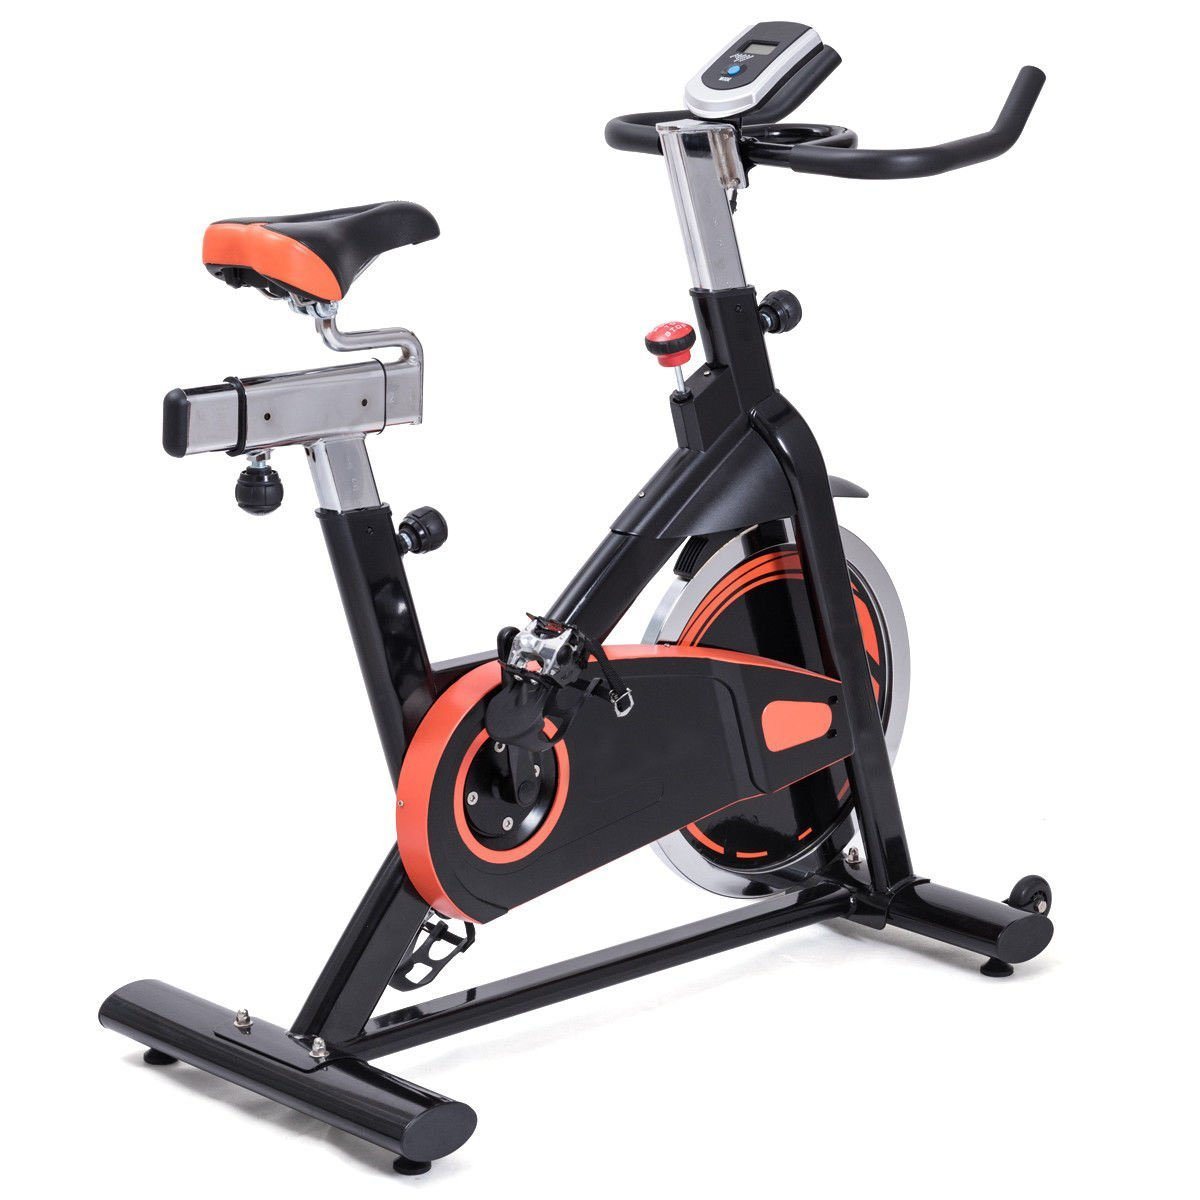 Globe House Products GHP Home/Outdoor Heavy Duty Solid Flywheel Exercise Training Bike w LCD Display